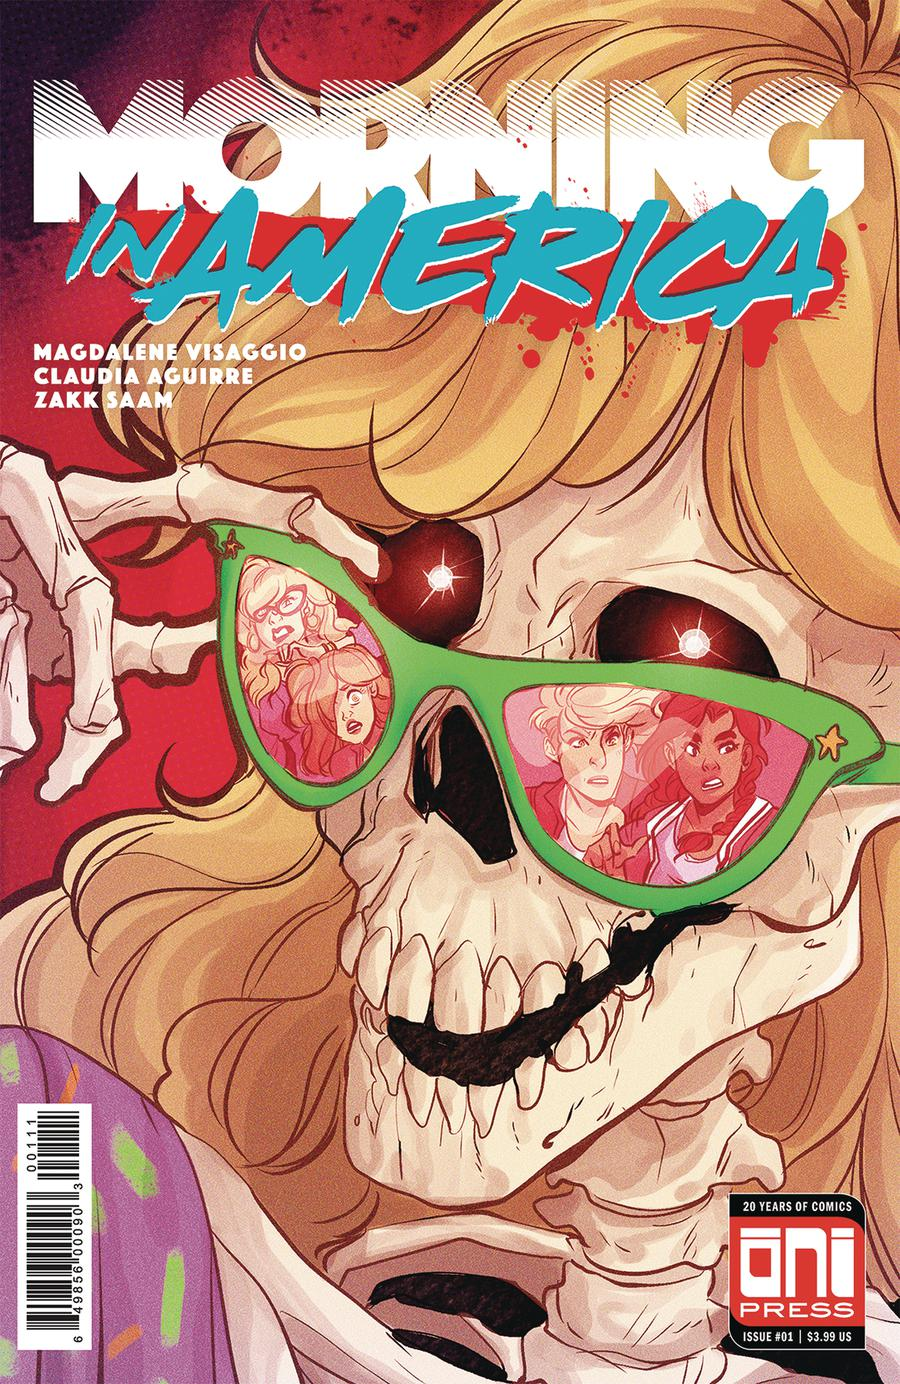 Morning In America #1 Cover A Regular Claudia Aguirre Cover